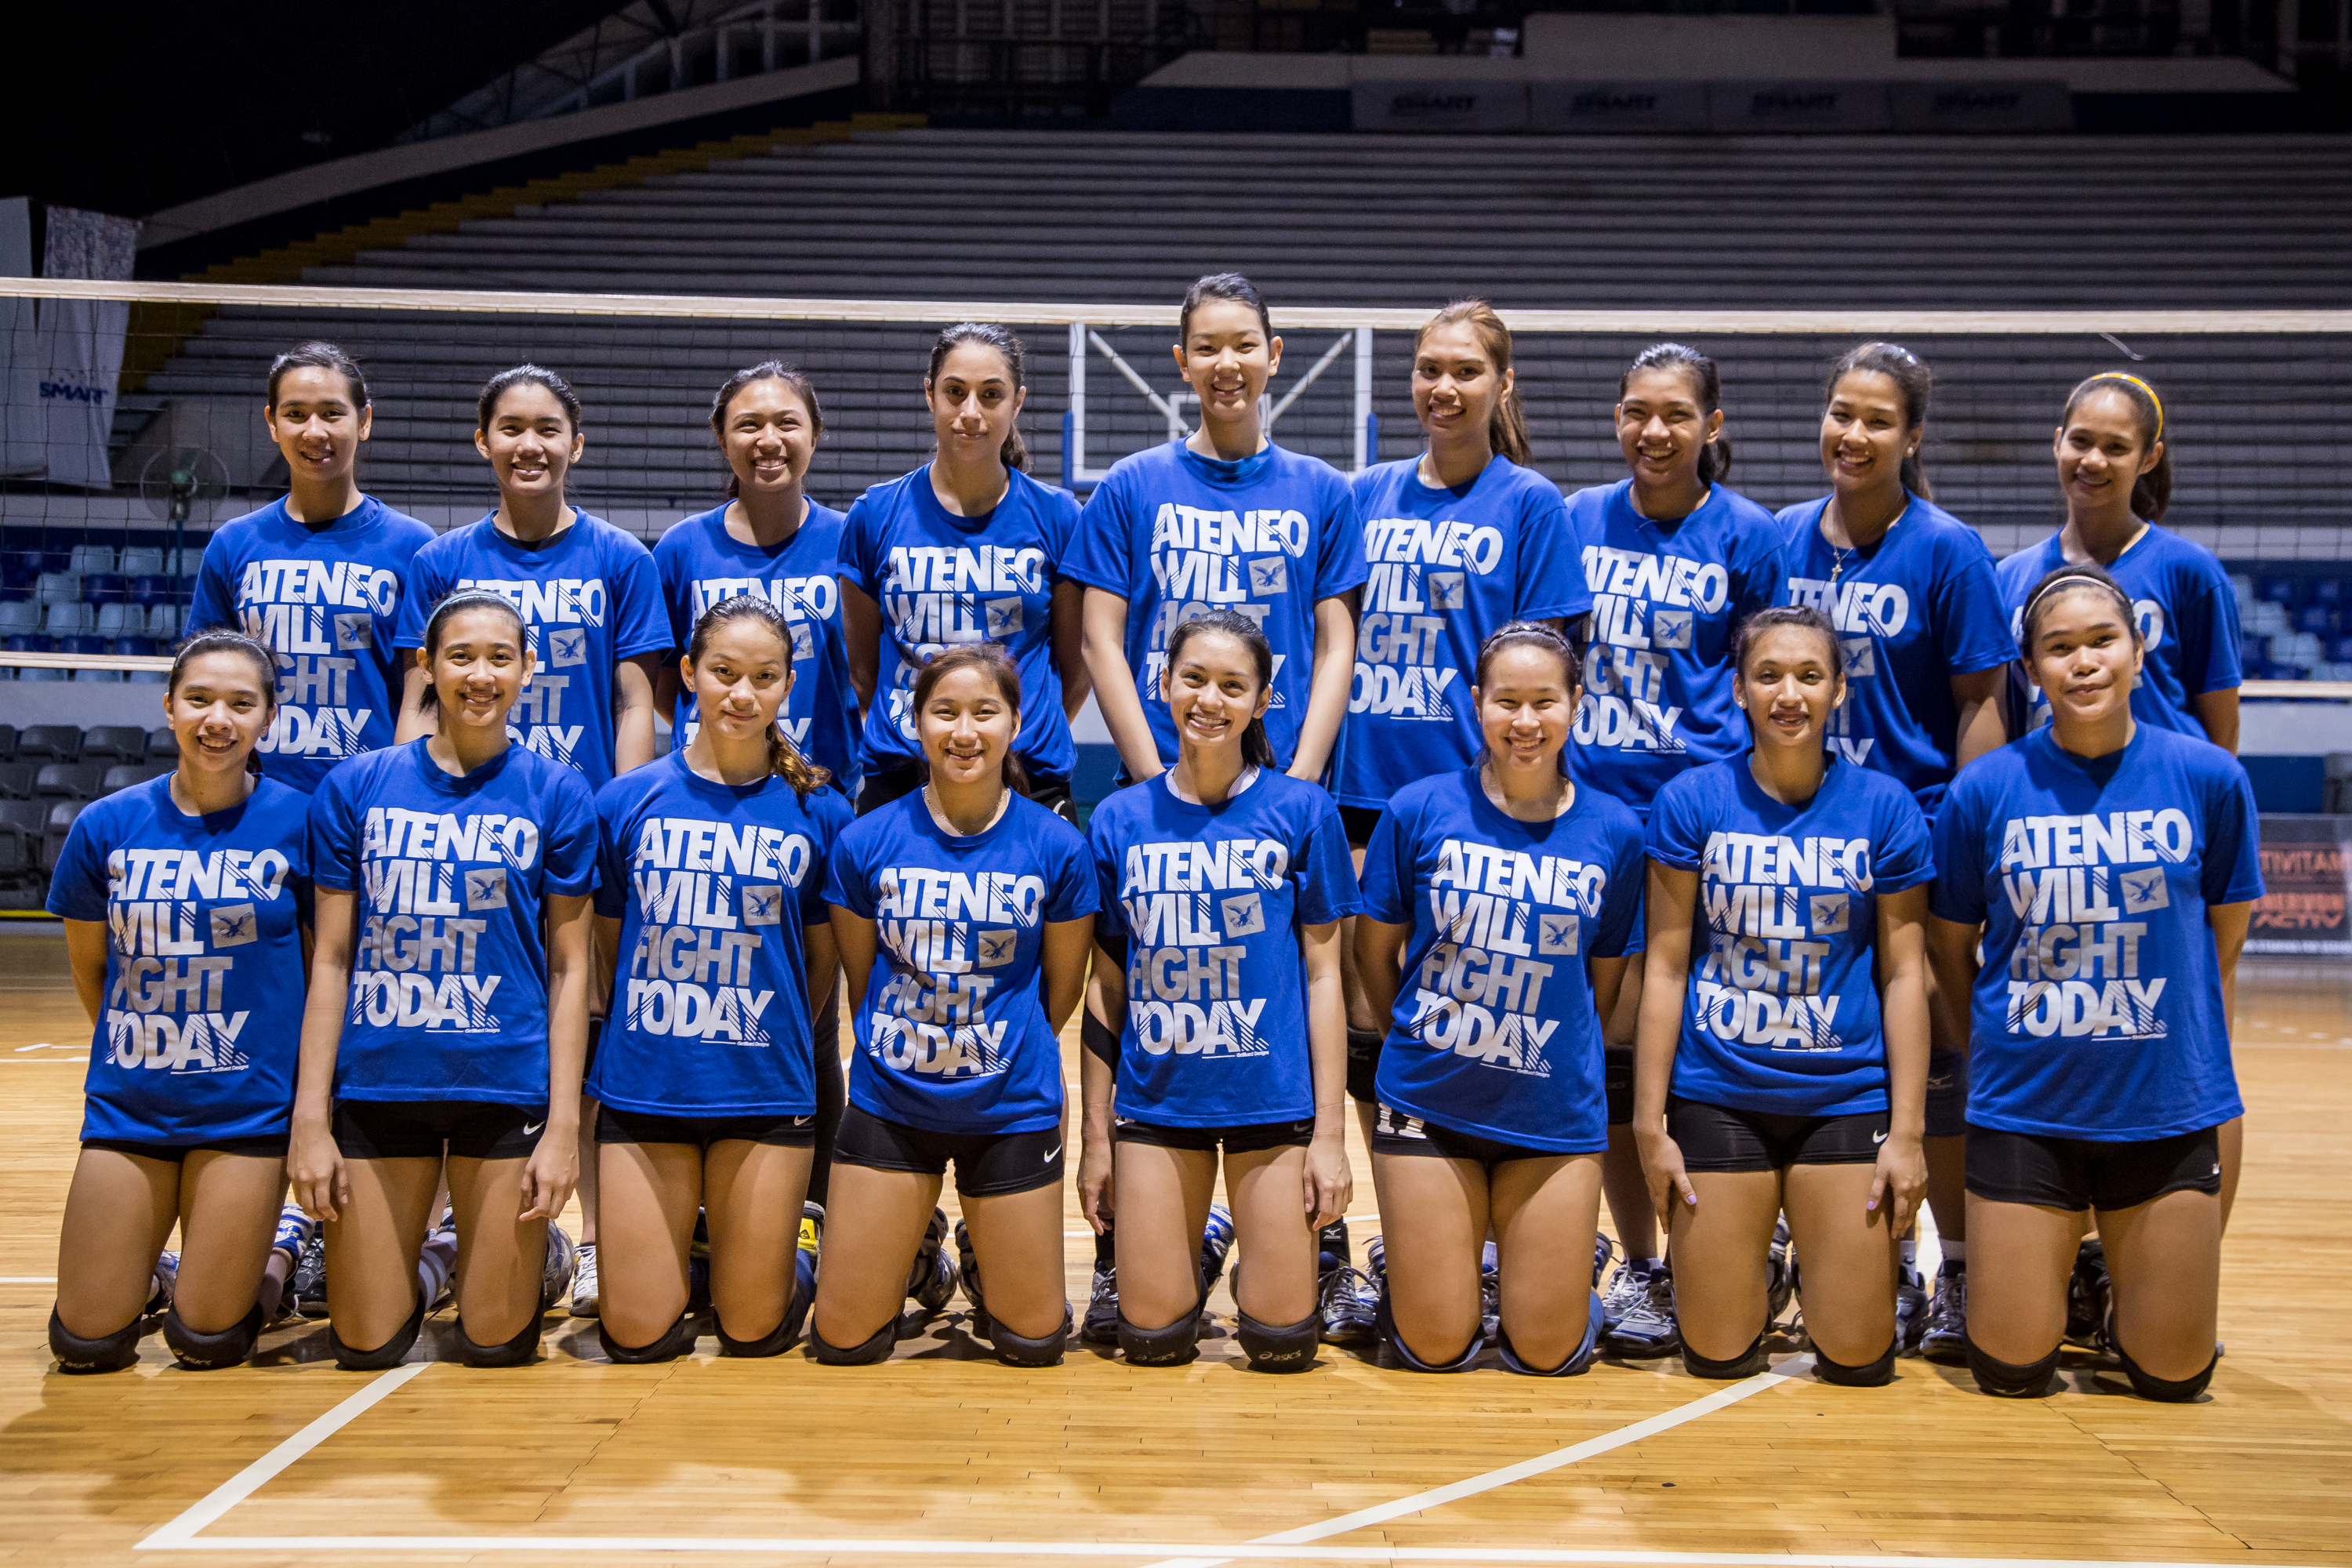 Dawn of a new era: Ateneo Lady Spikers set for Season 76